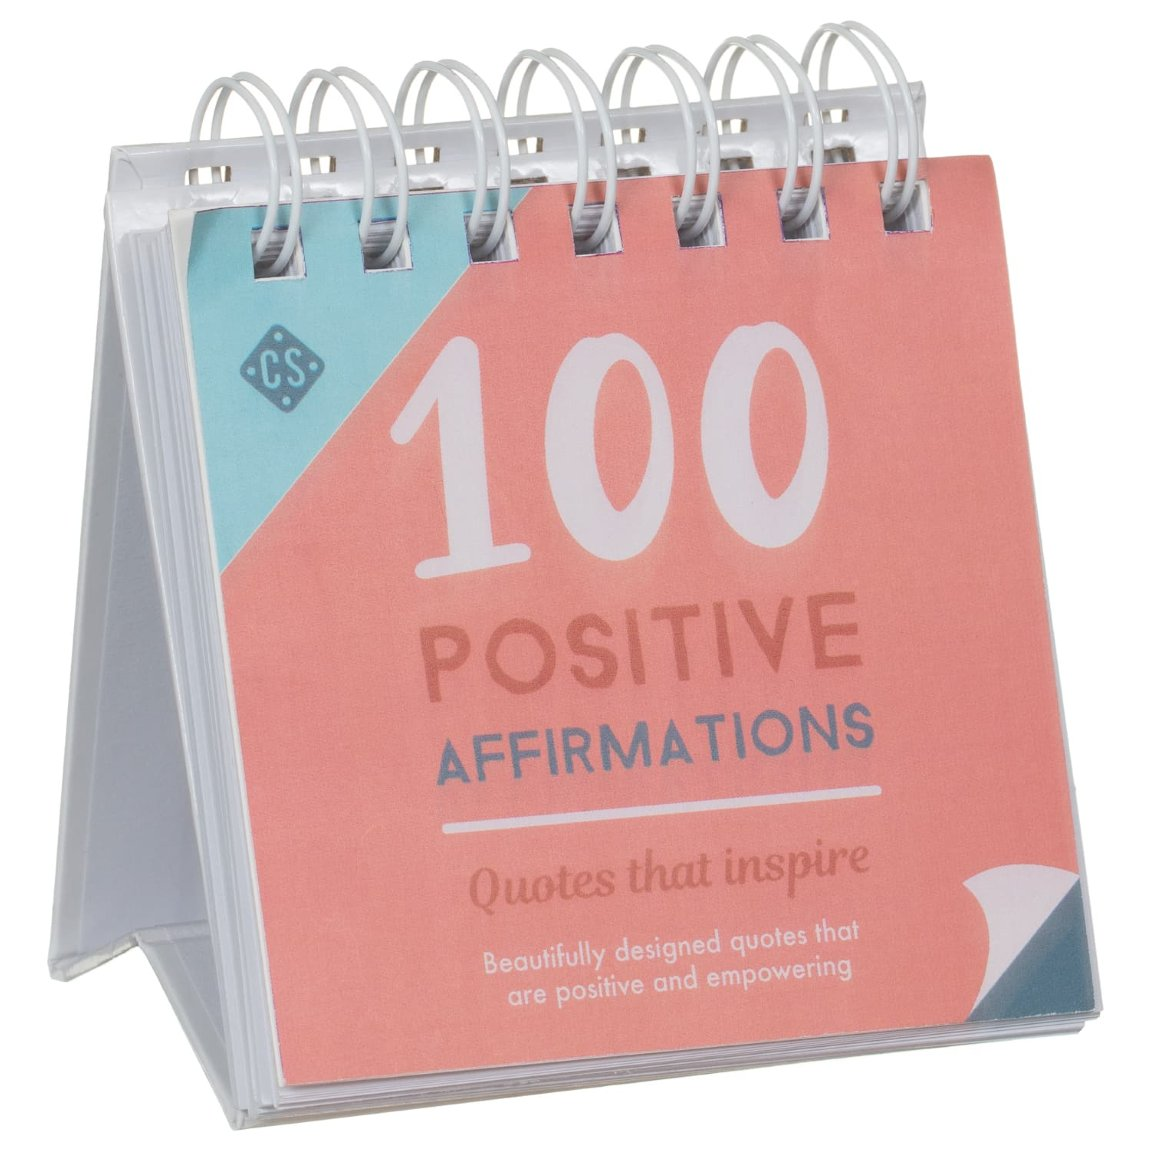 100 Positive Affirmations